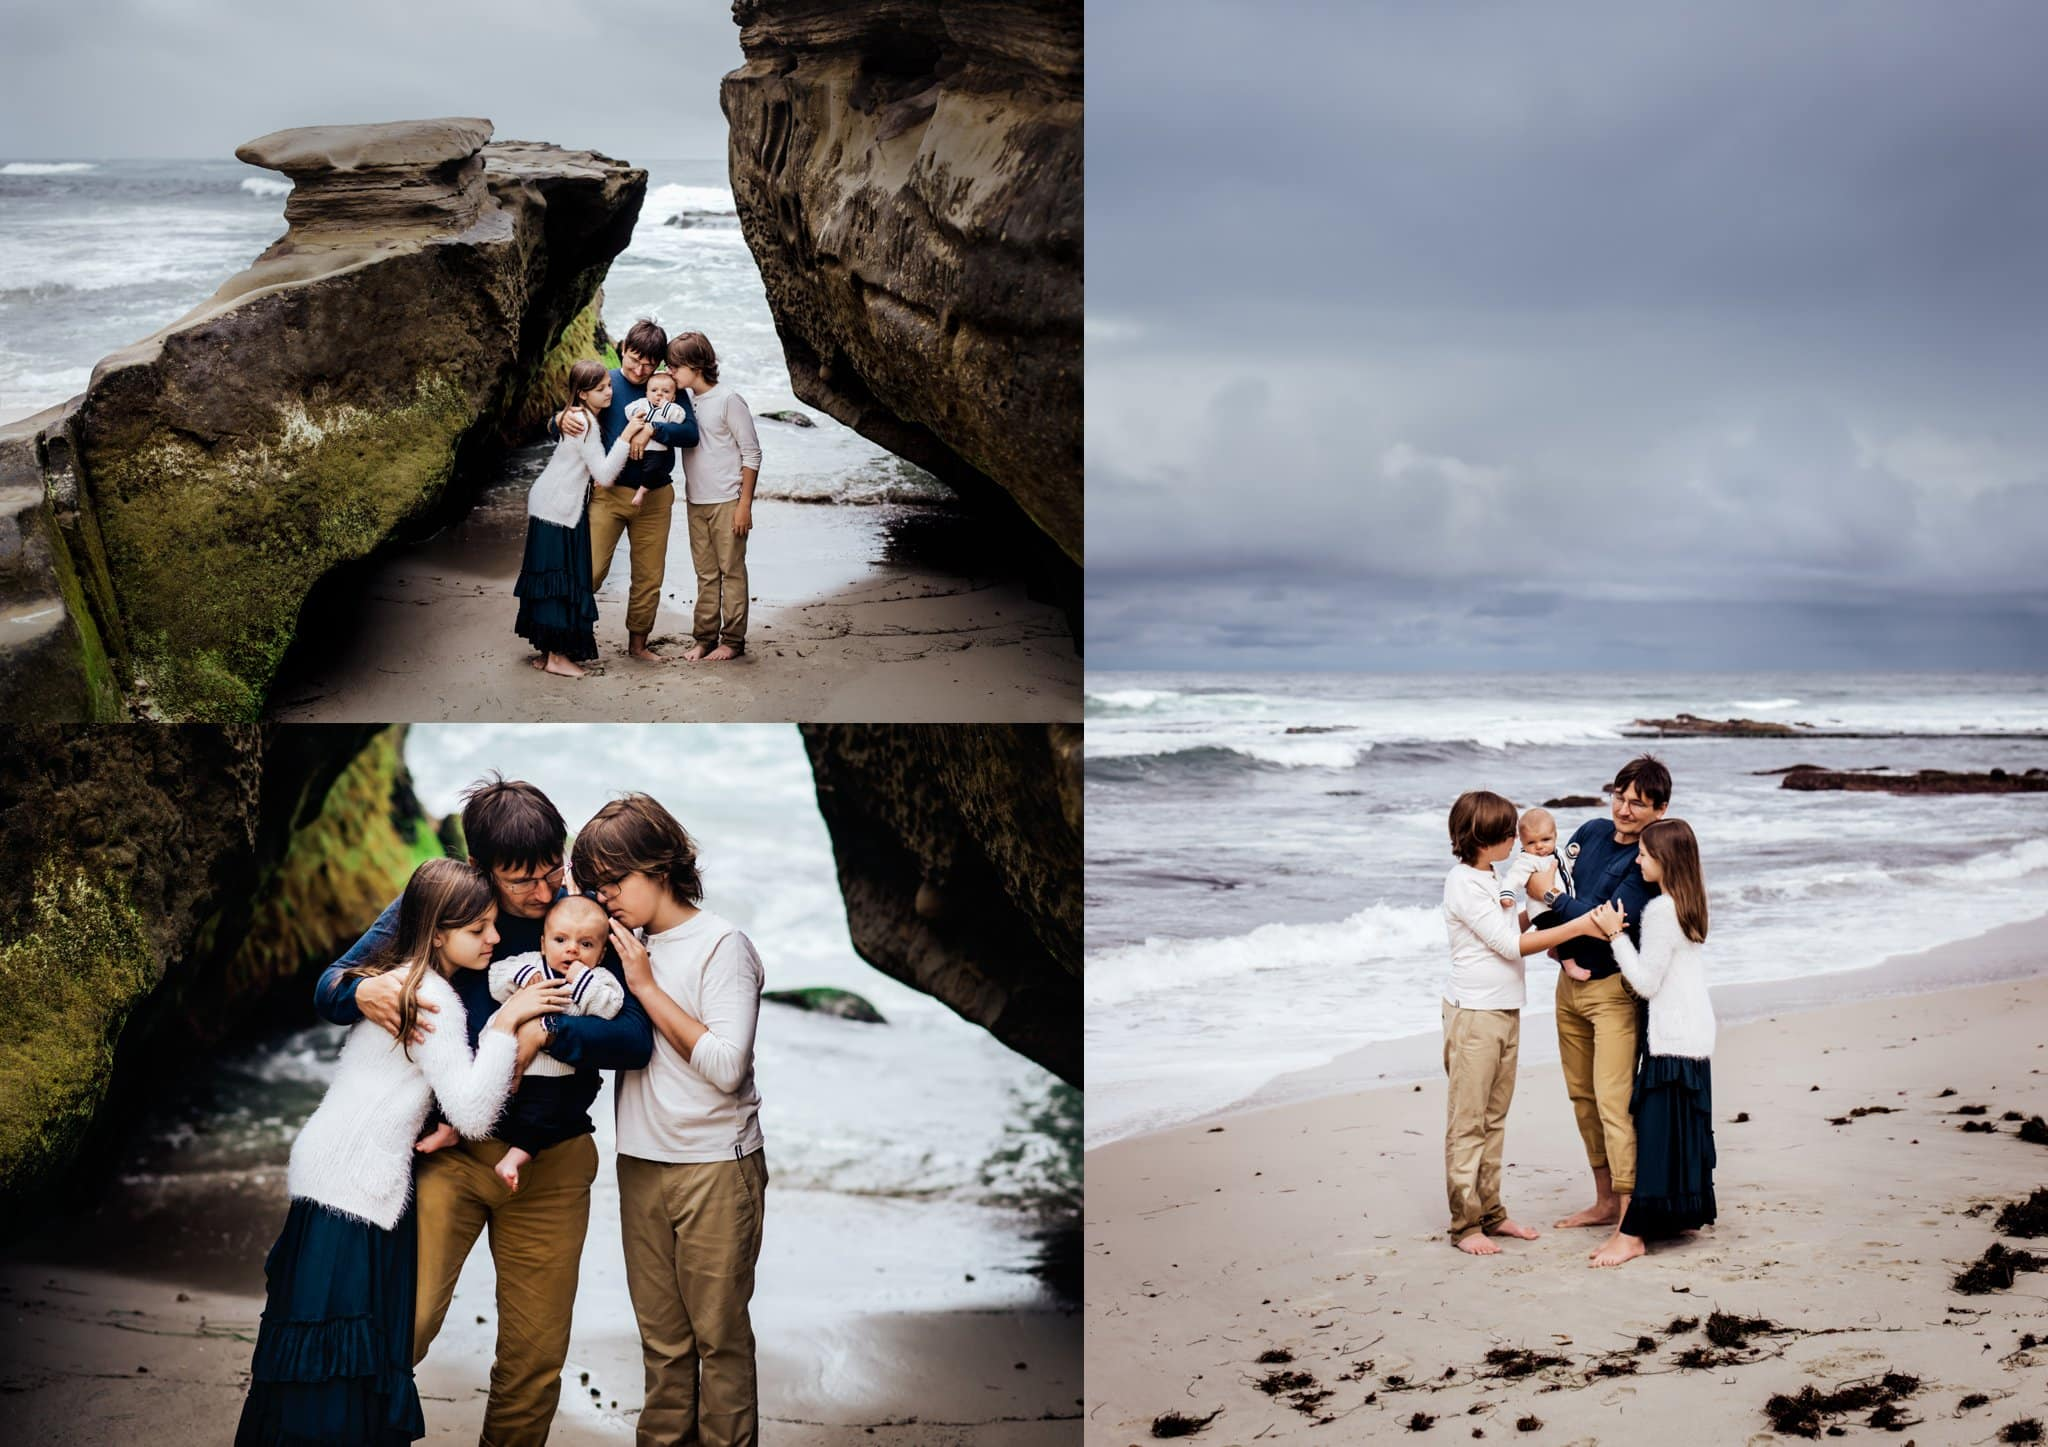 Father and three children cuddle together at Windansea Beach